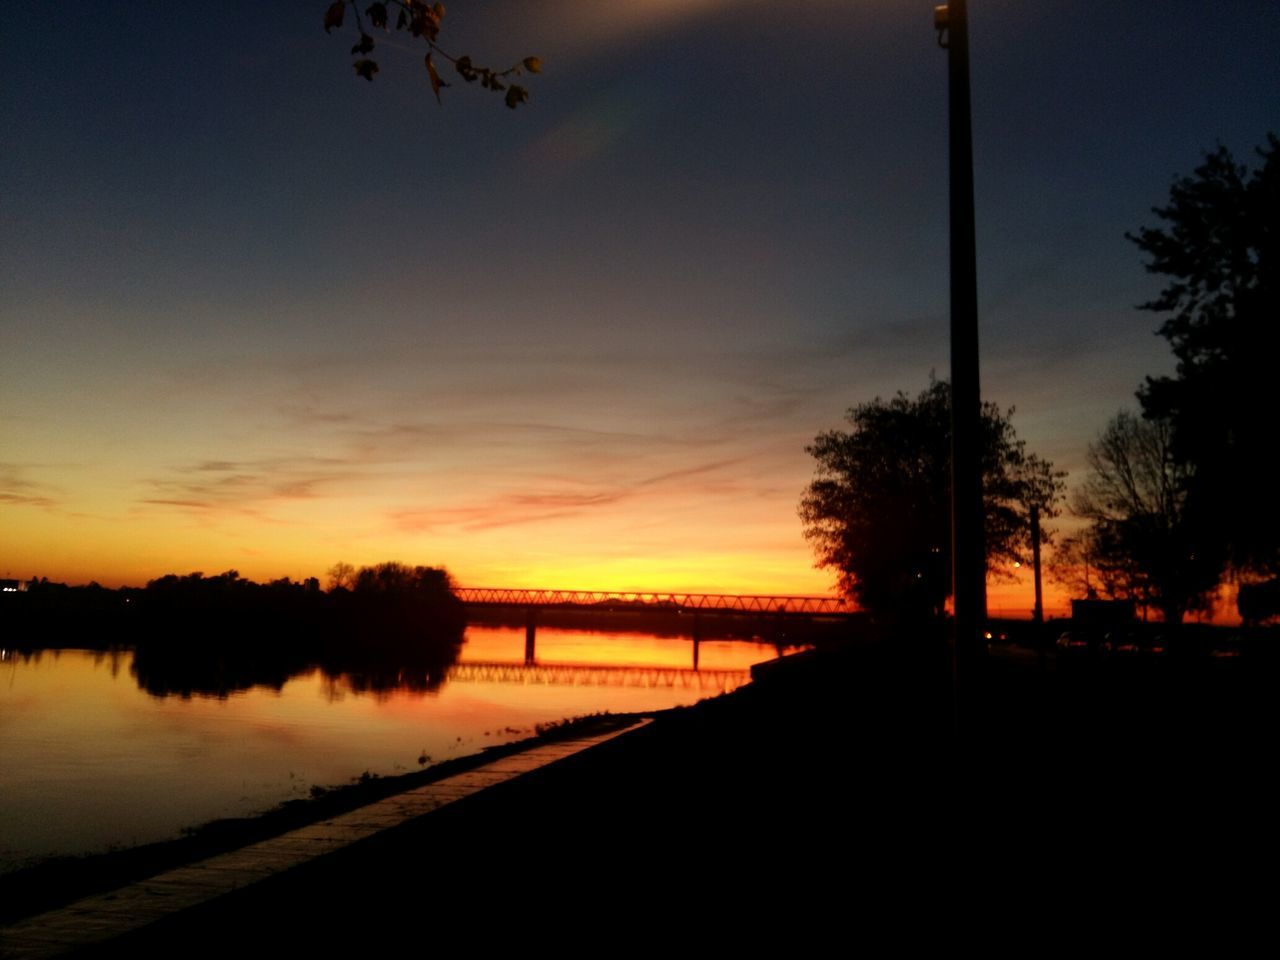 Autumn Fall Sunset Bridge River Slavonski Brod